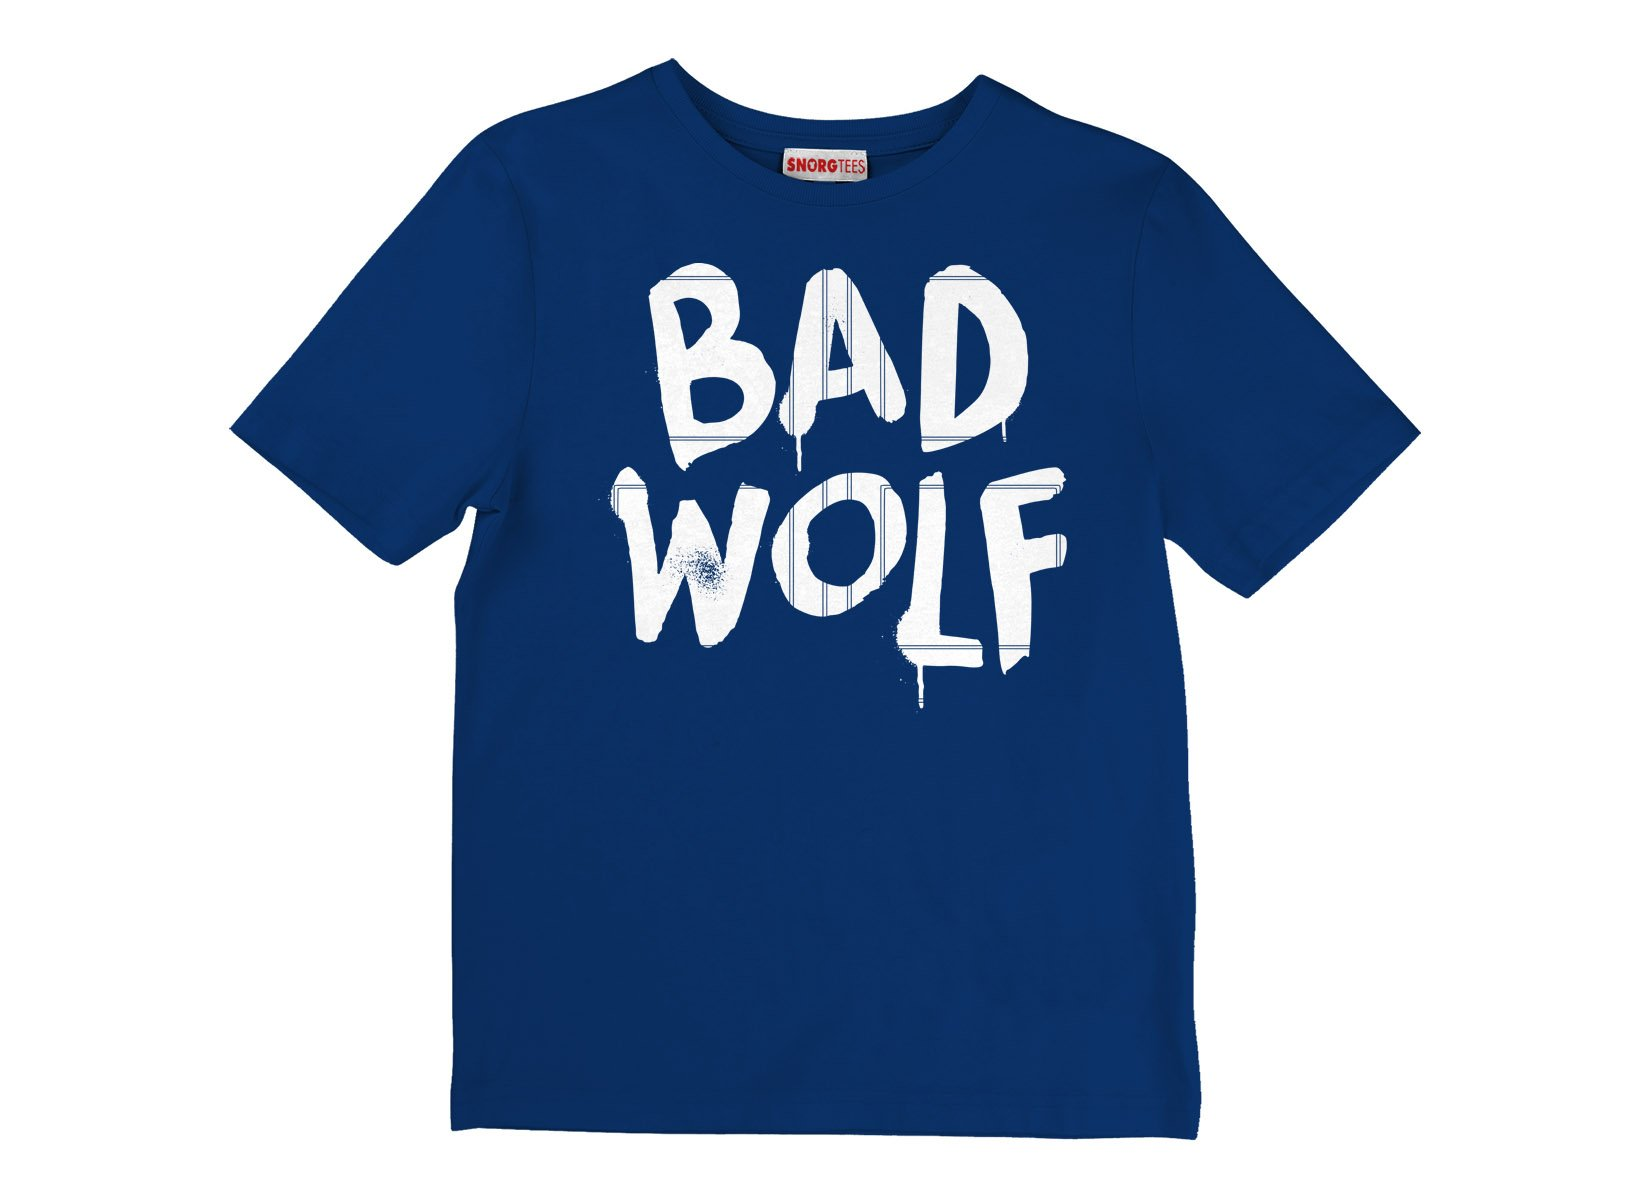 Bad Wolf on Kids T-Shirt